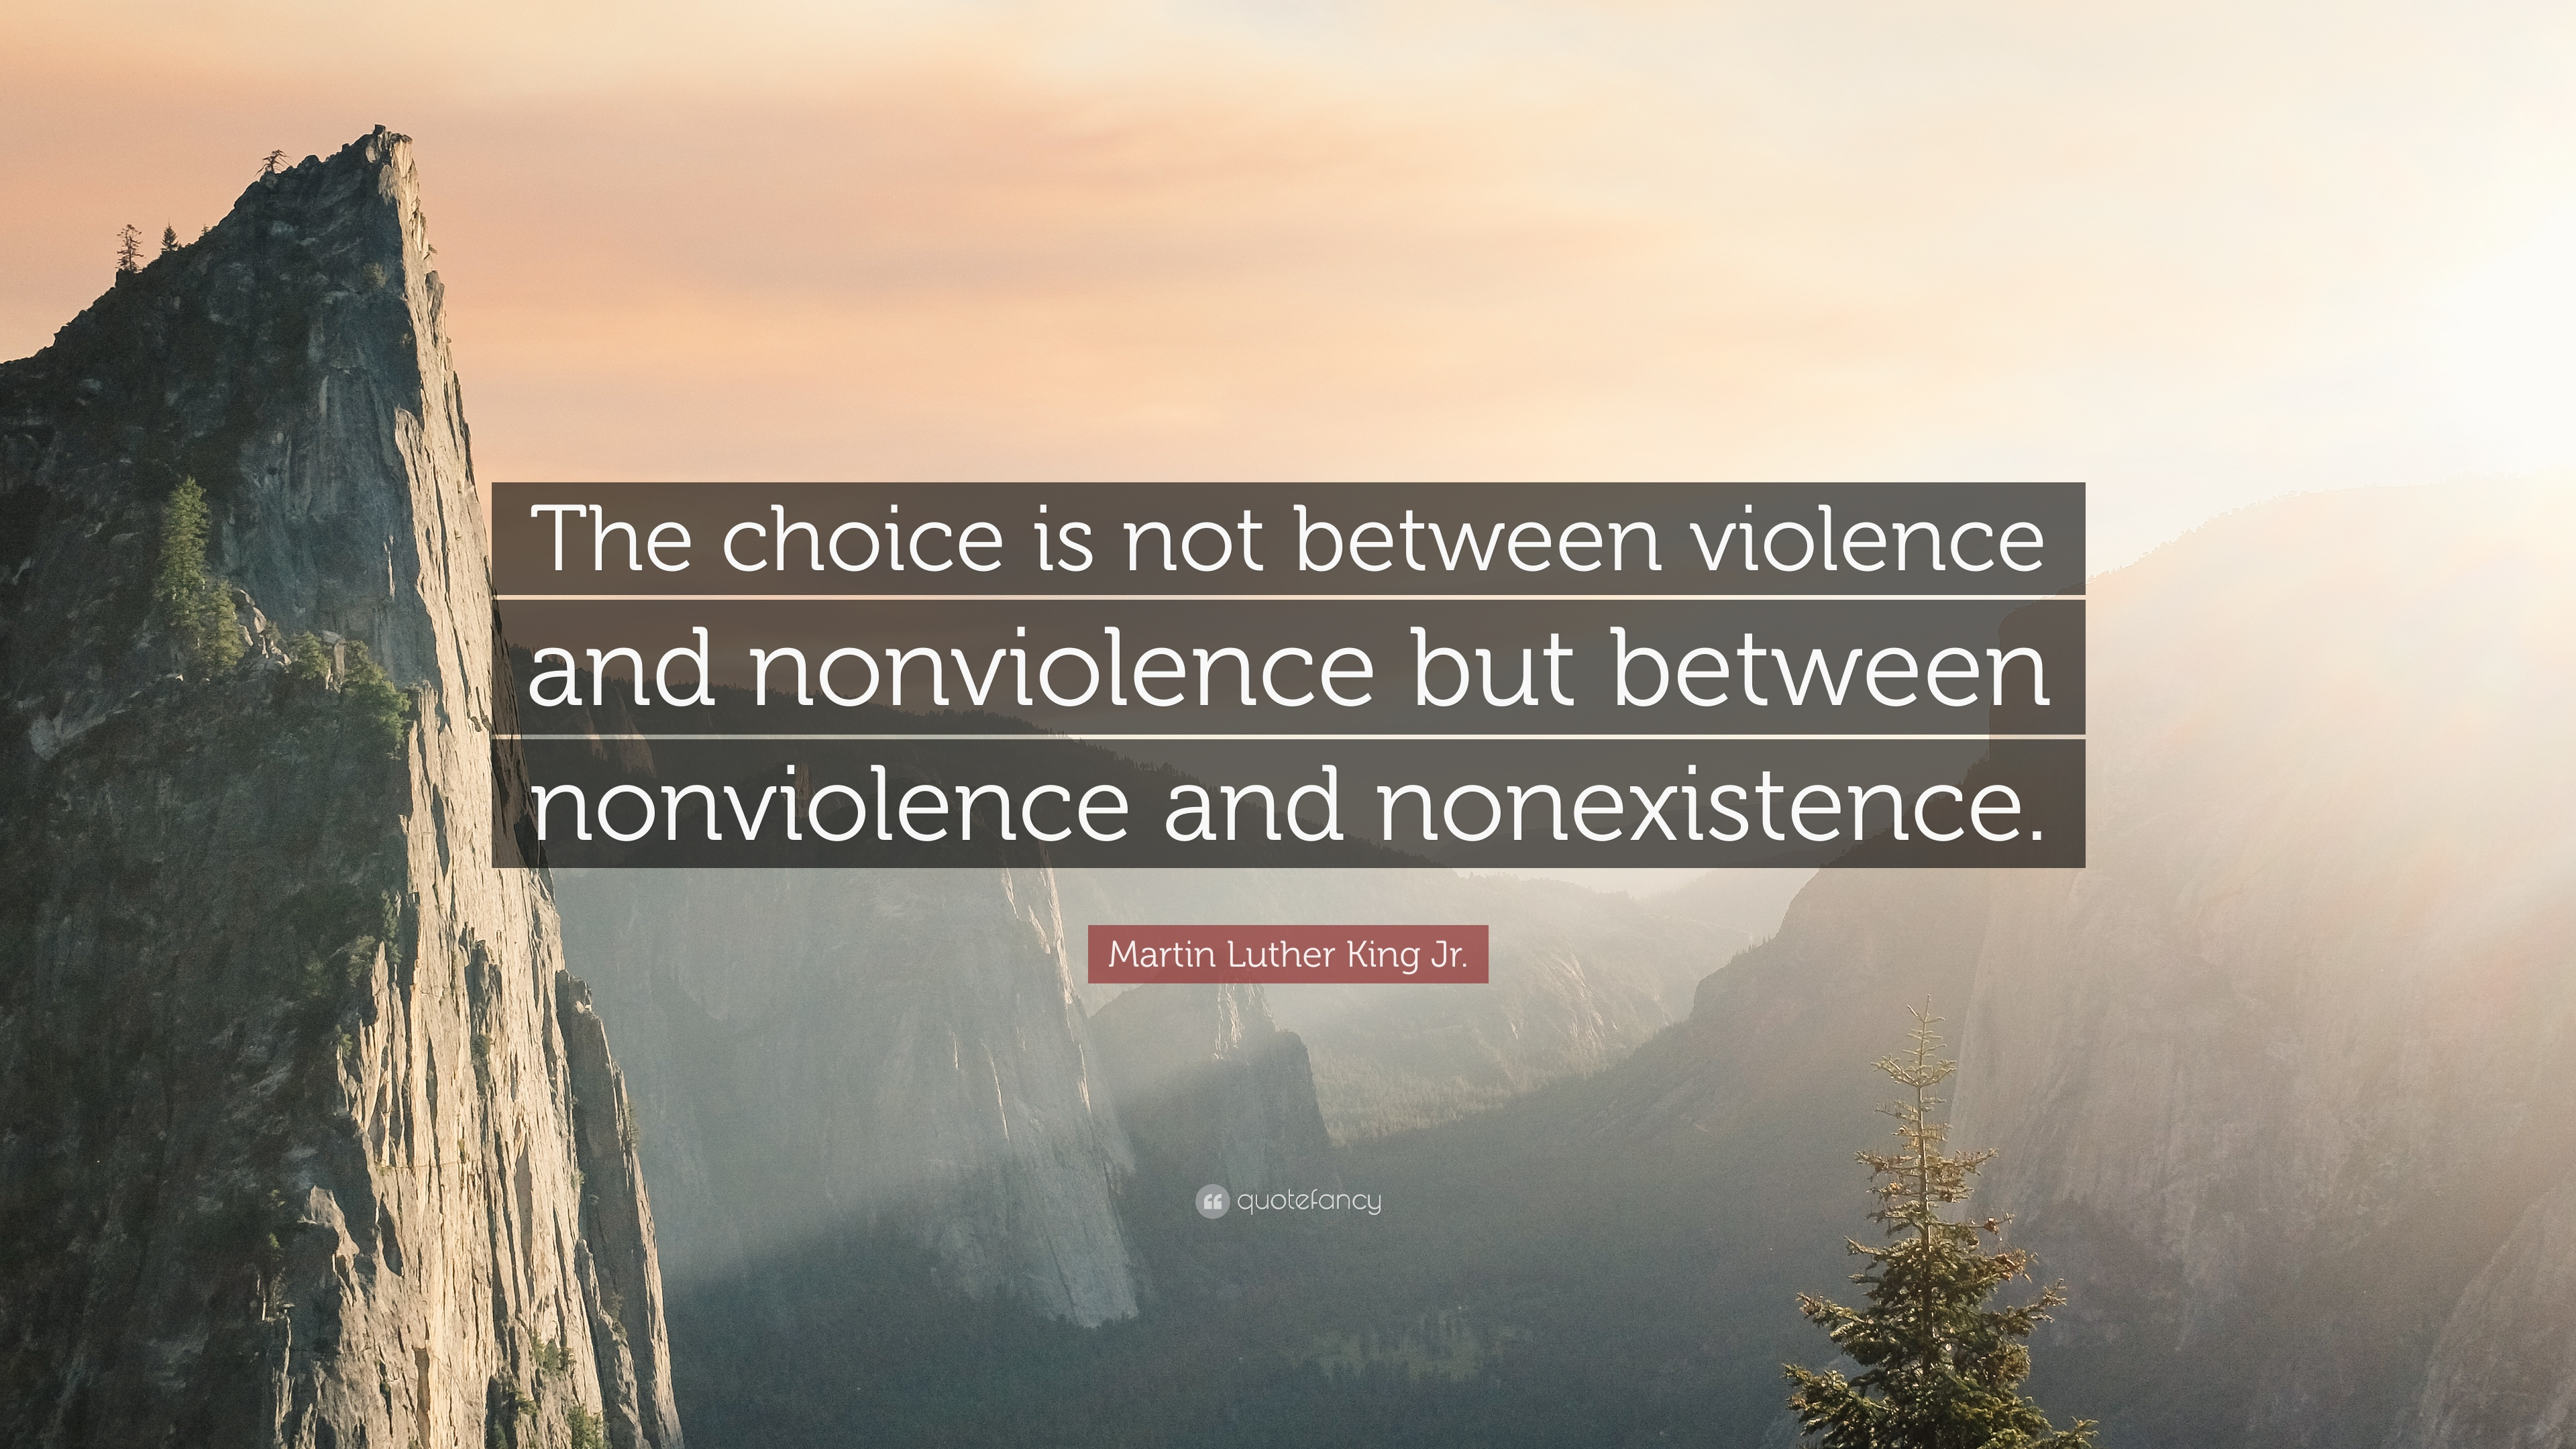 Martin Luther King Jr. Quotes (83 wallpapers) - Quotefancy